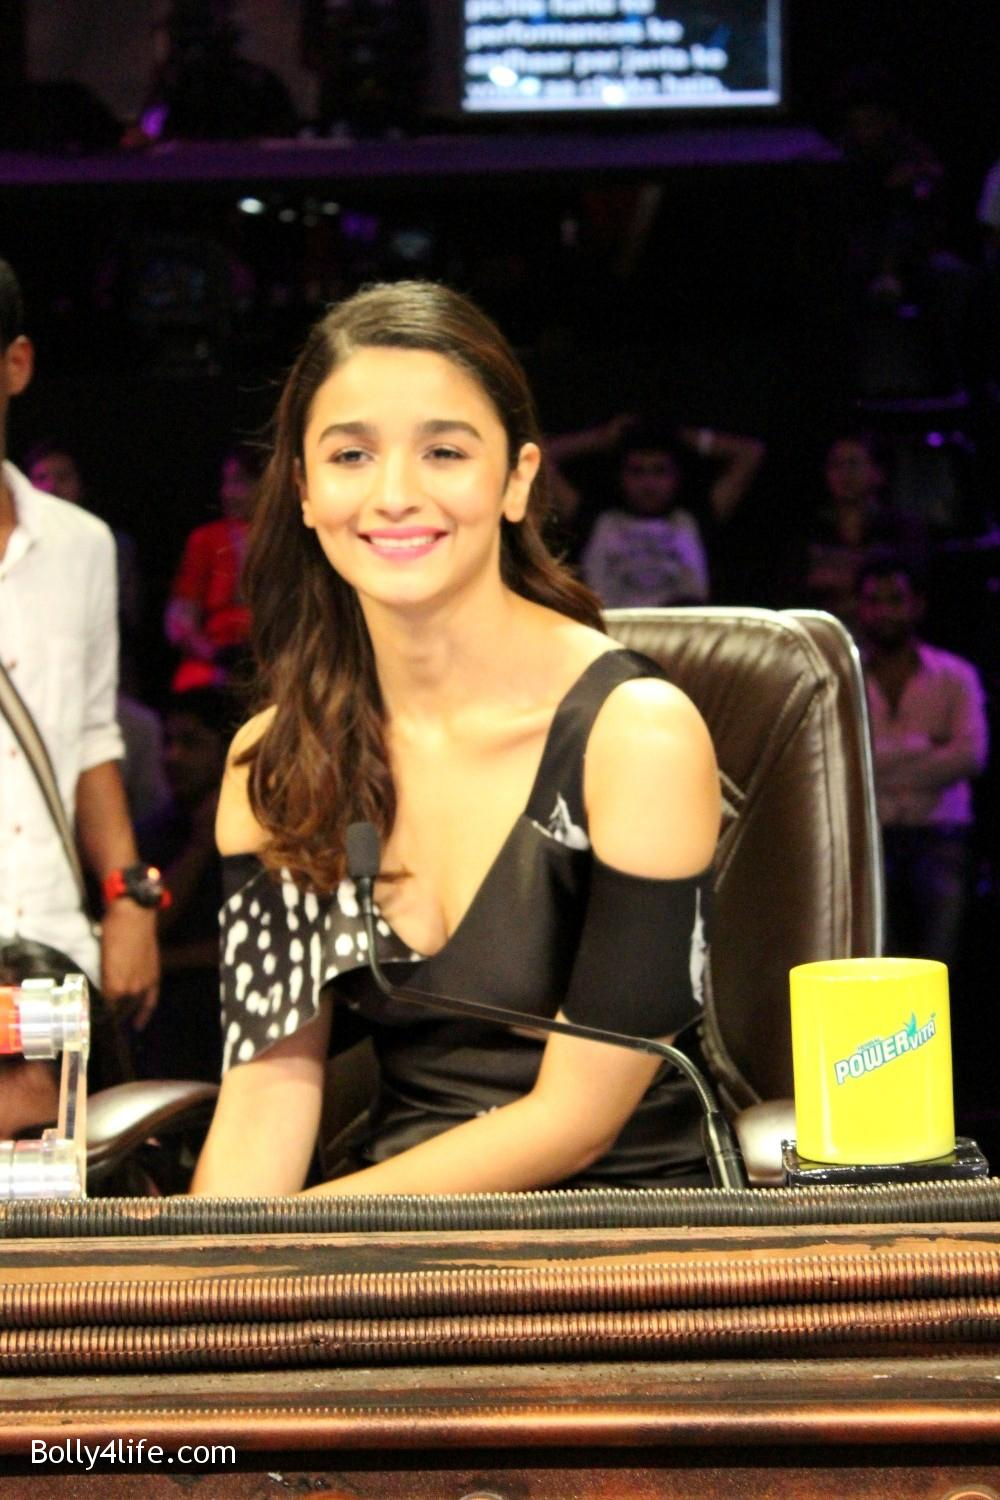 Alia-Bhatt-during-the-promotion-of-film-Dear-Zindagi-on-the-sets-of-Sony-TV-reality-show-Super-Dancer-8.jpg